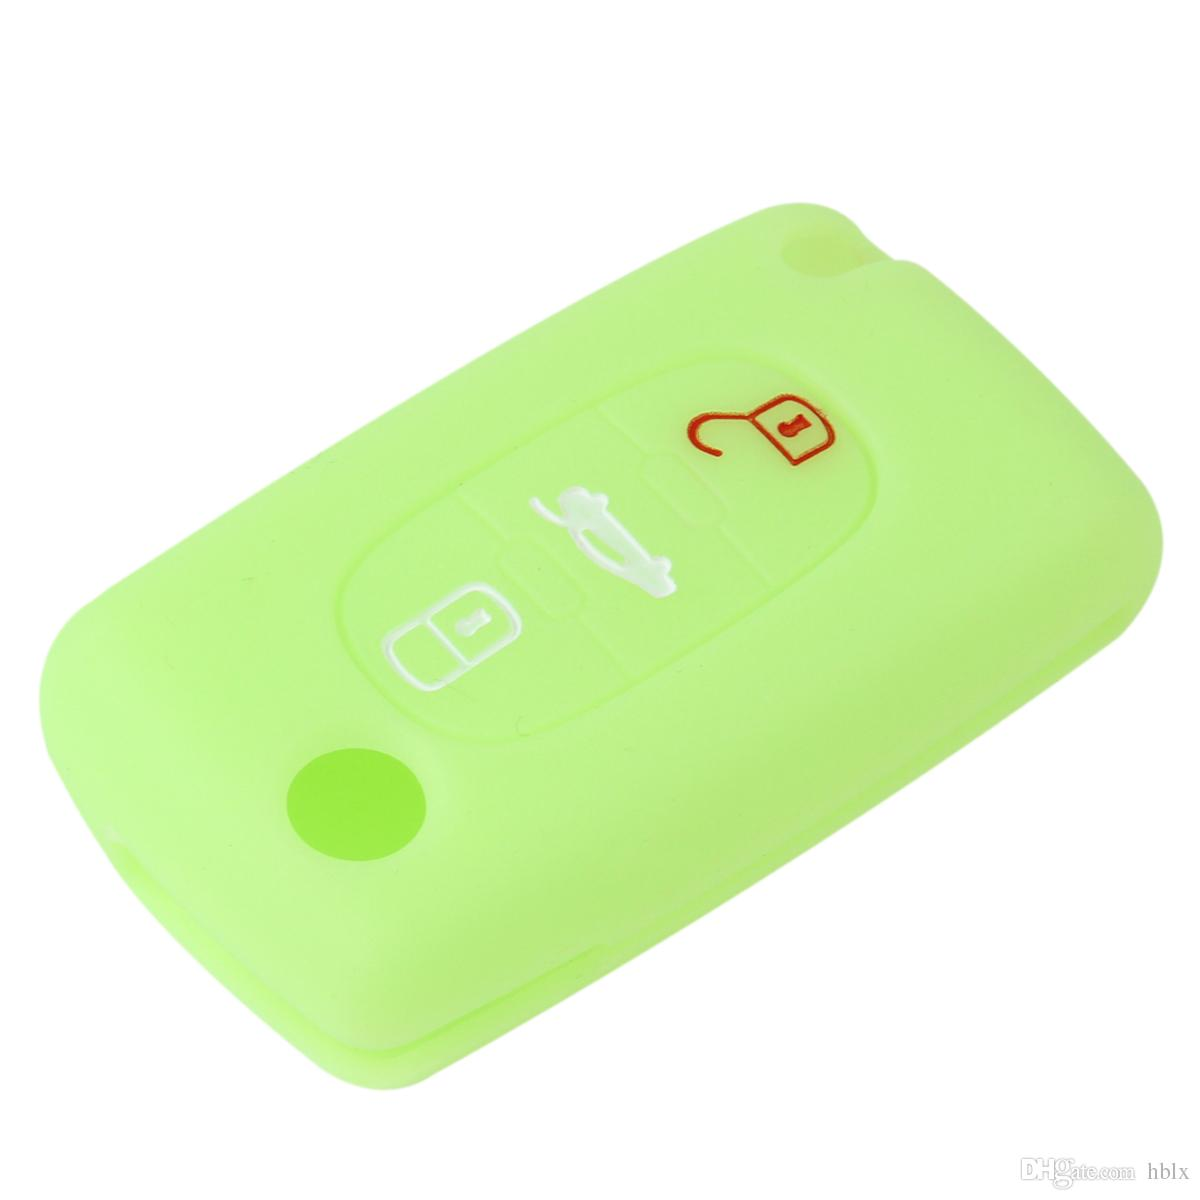 Remote 3 Buttons Key Fob Case Silicone Cover fit for CITROEN C2 C3 C4 C5 C6 Picasso AUP_40H